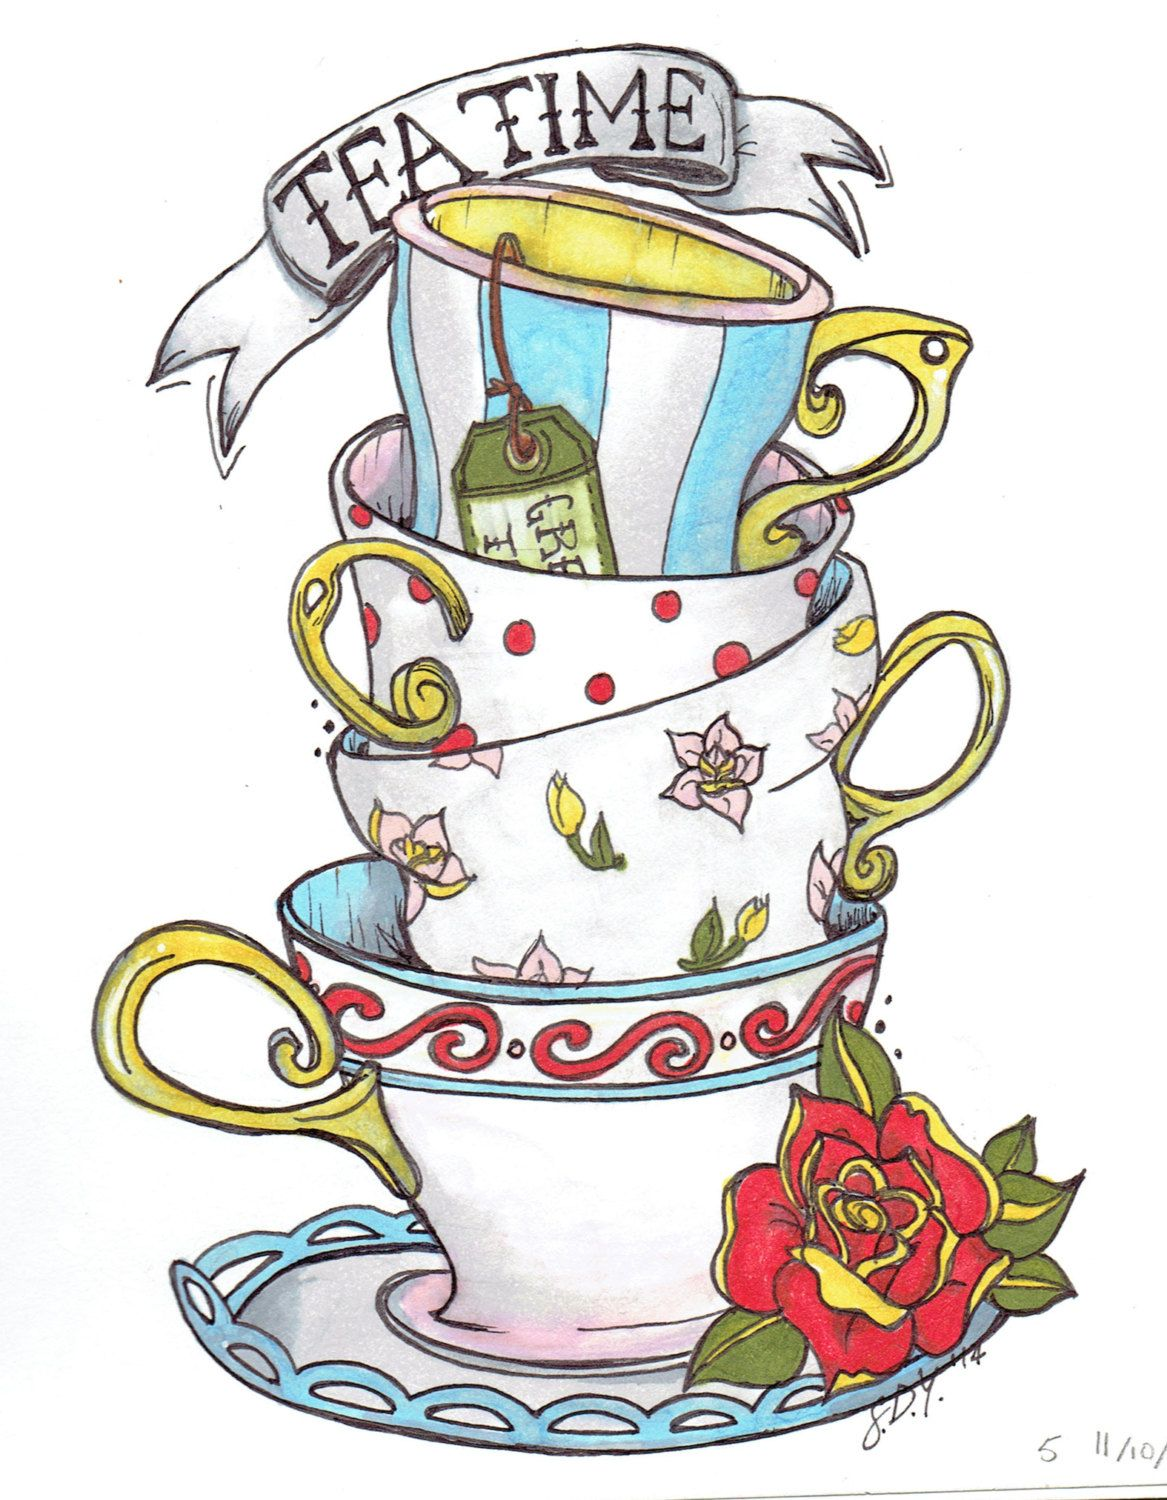 Drawn Alice In Wonderland Teacup 844 Tea Cup Drawing Alice In